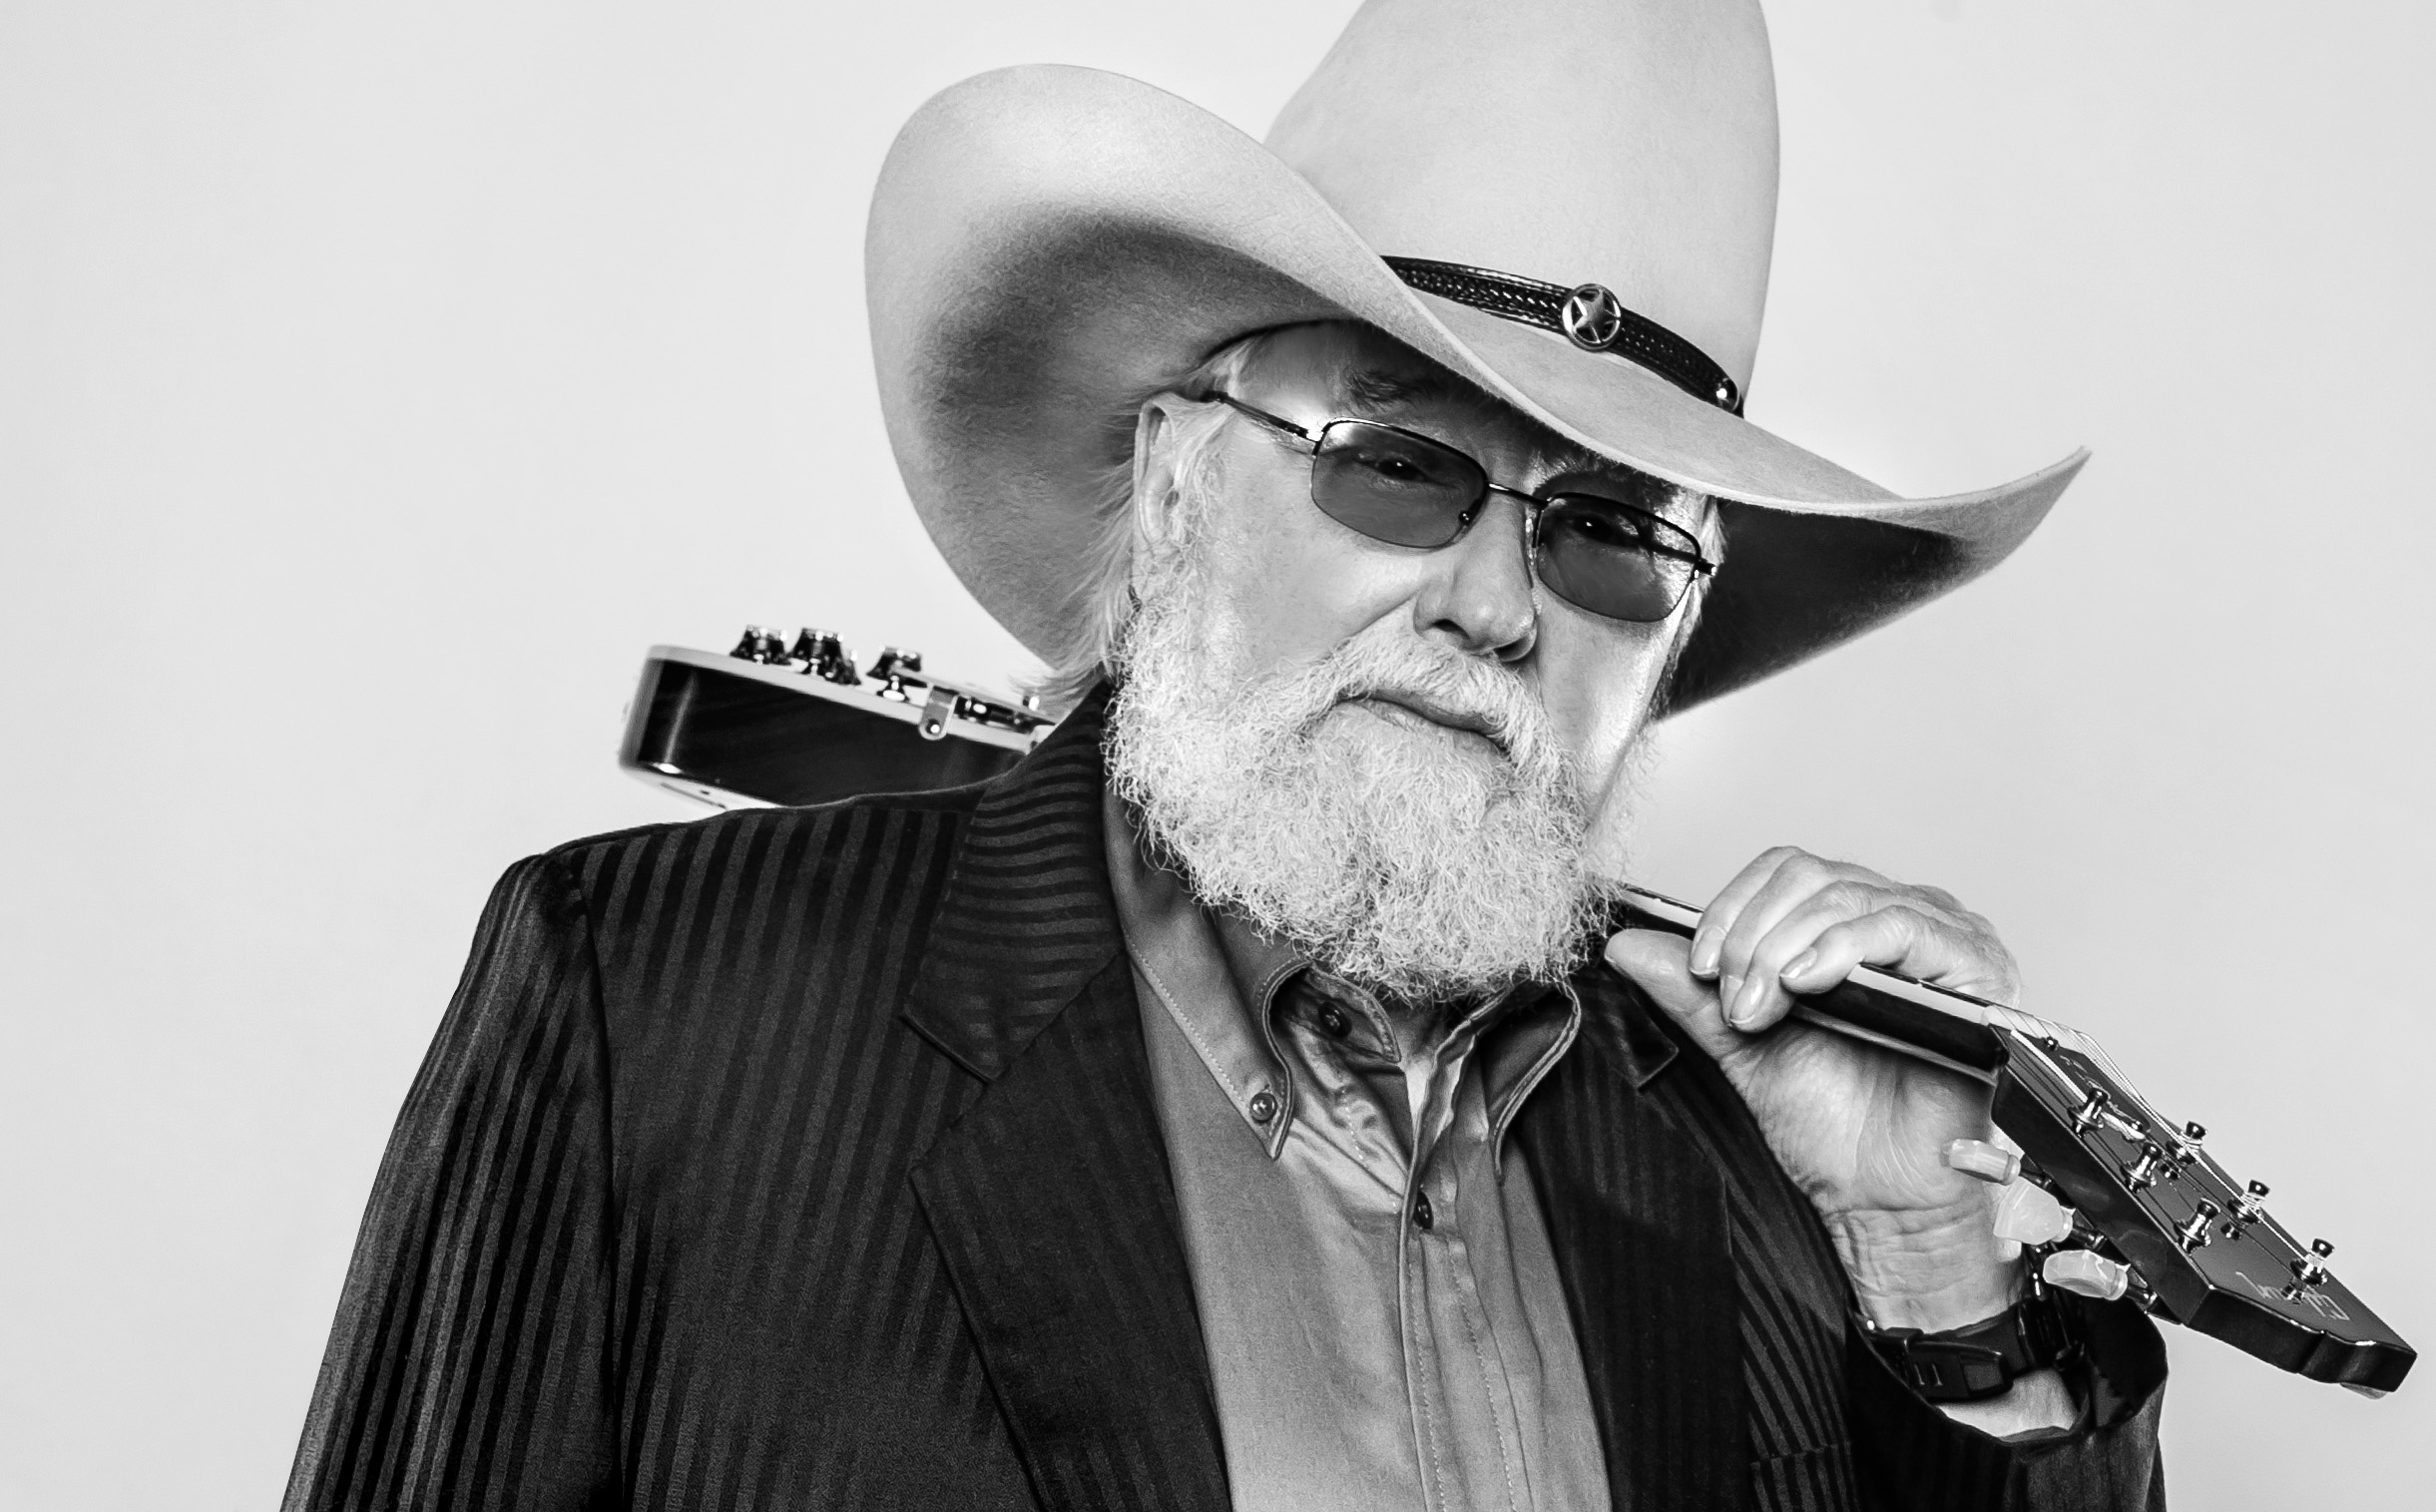 Charlie Daniels releases new CD, 'Memories, Memoirs and Miles – Songs of a Lifetime', as companion to forthcoming Memoir